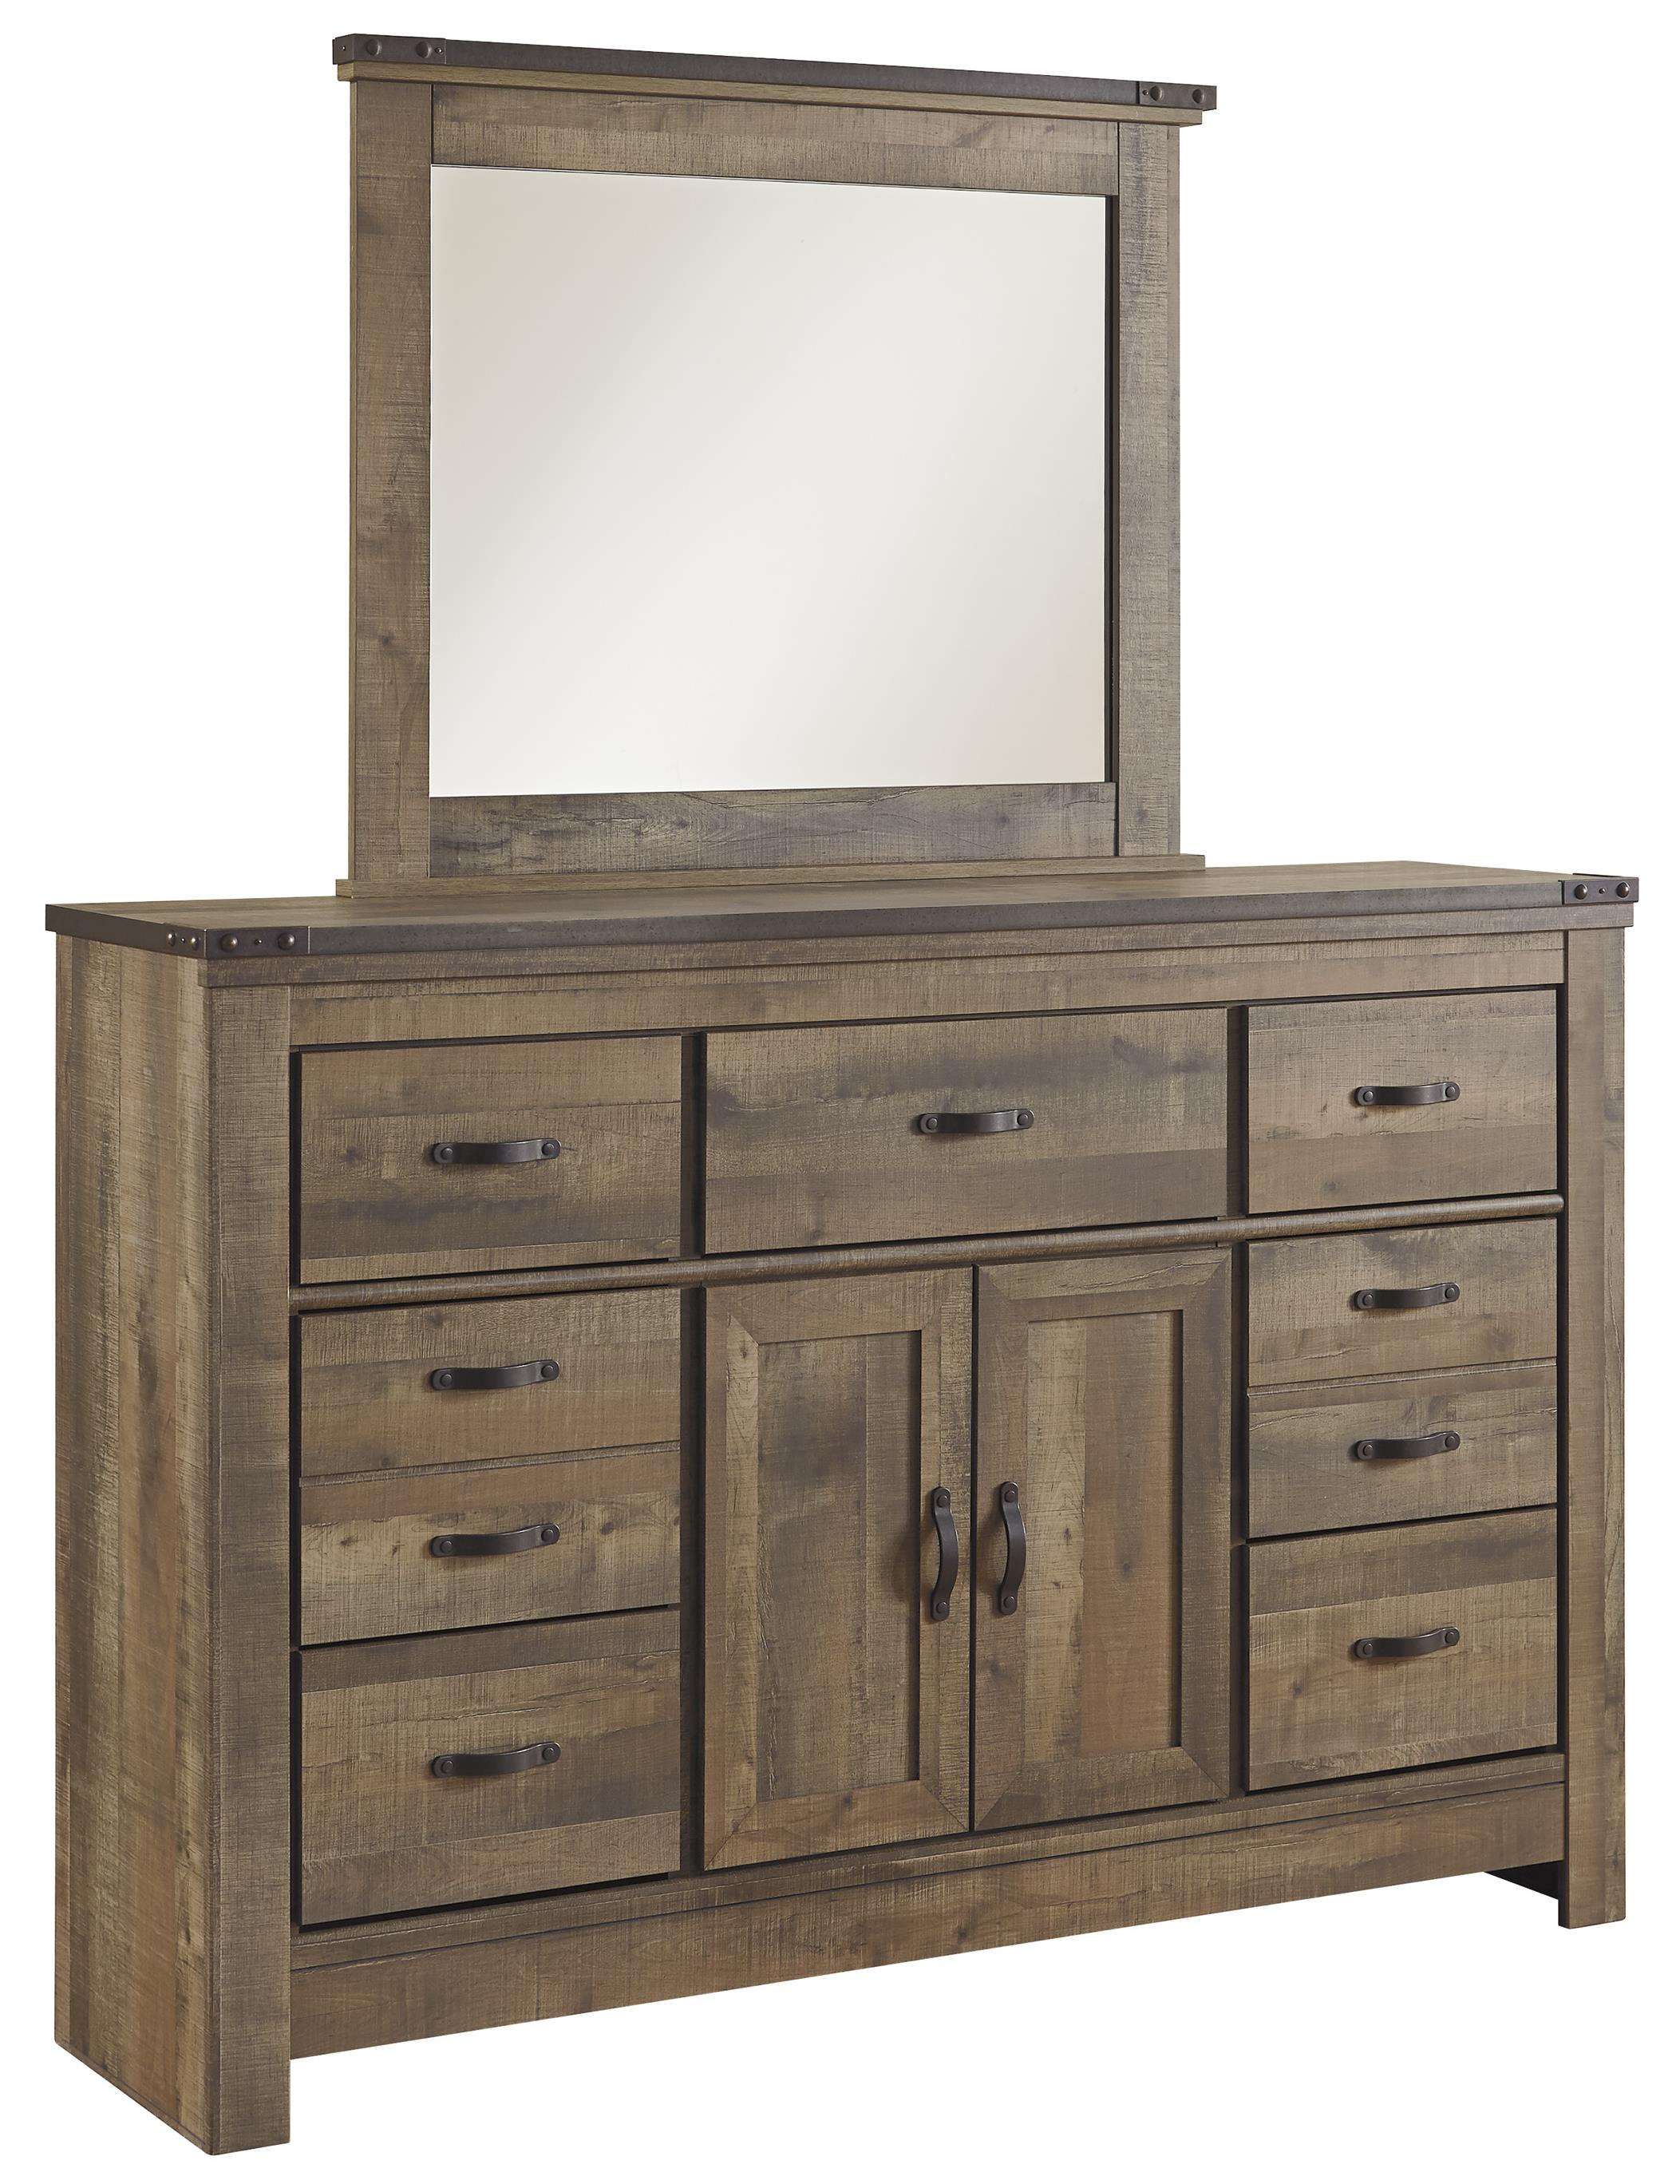 Signature Design by Ashley Trinell Dresser & Mirror - Item Number: B446-32+26